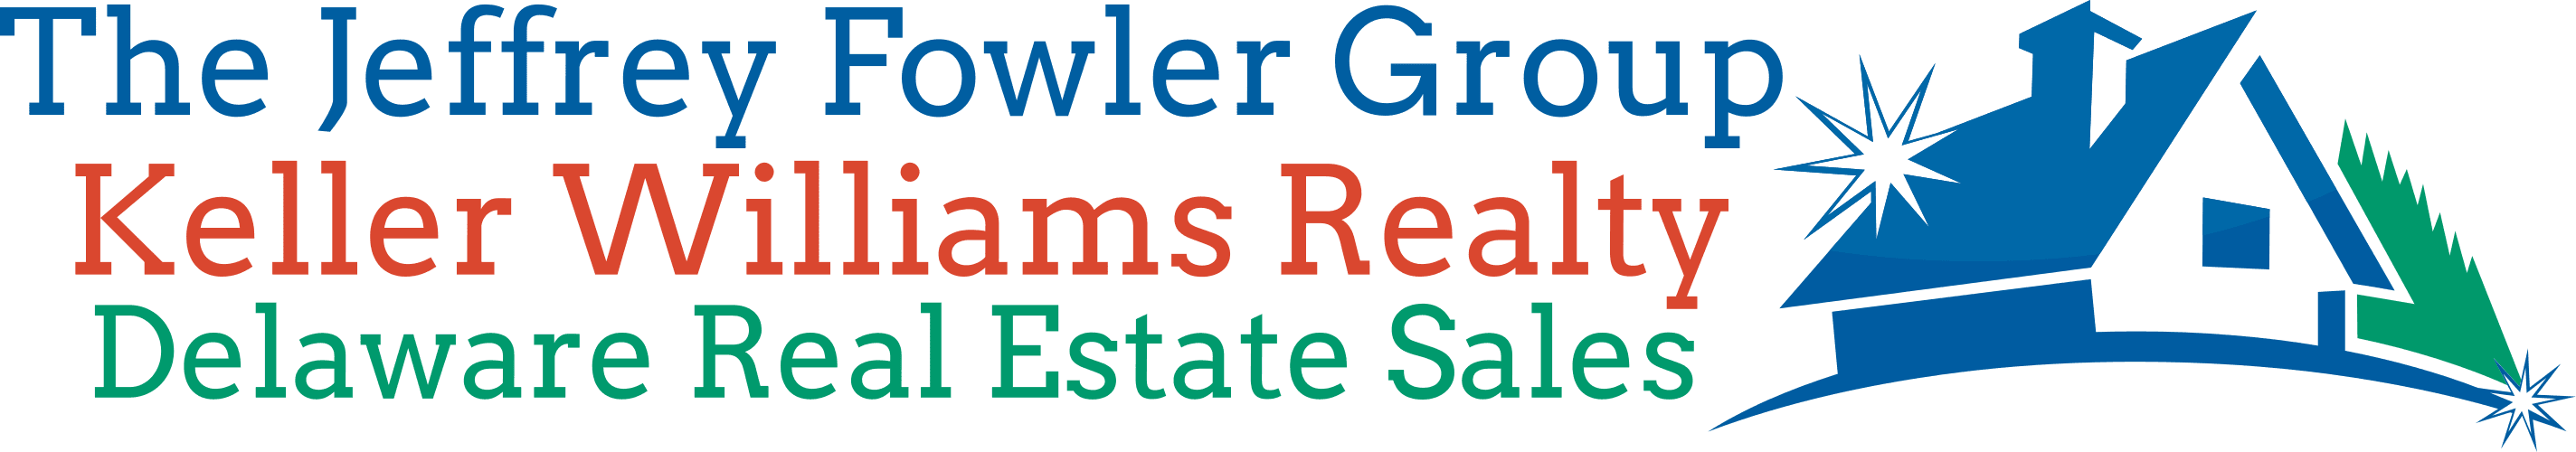 Delaware Real Estate